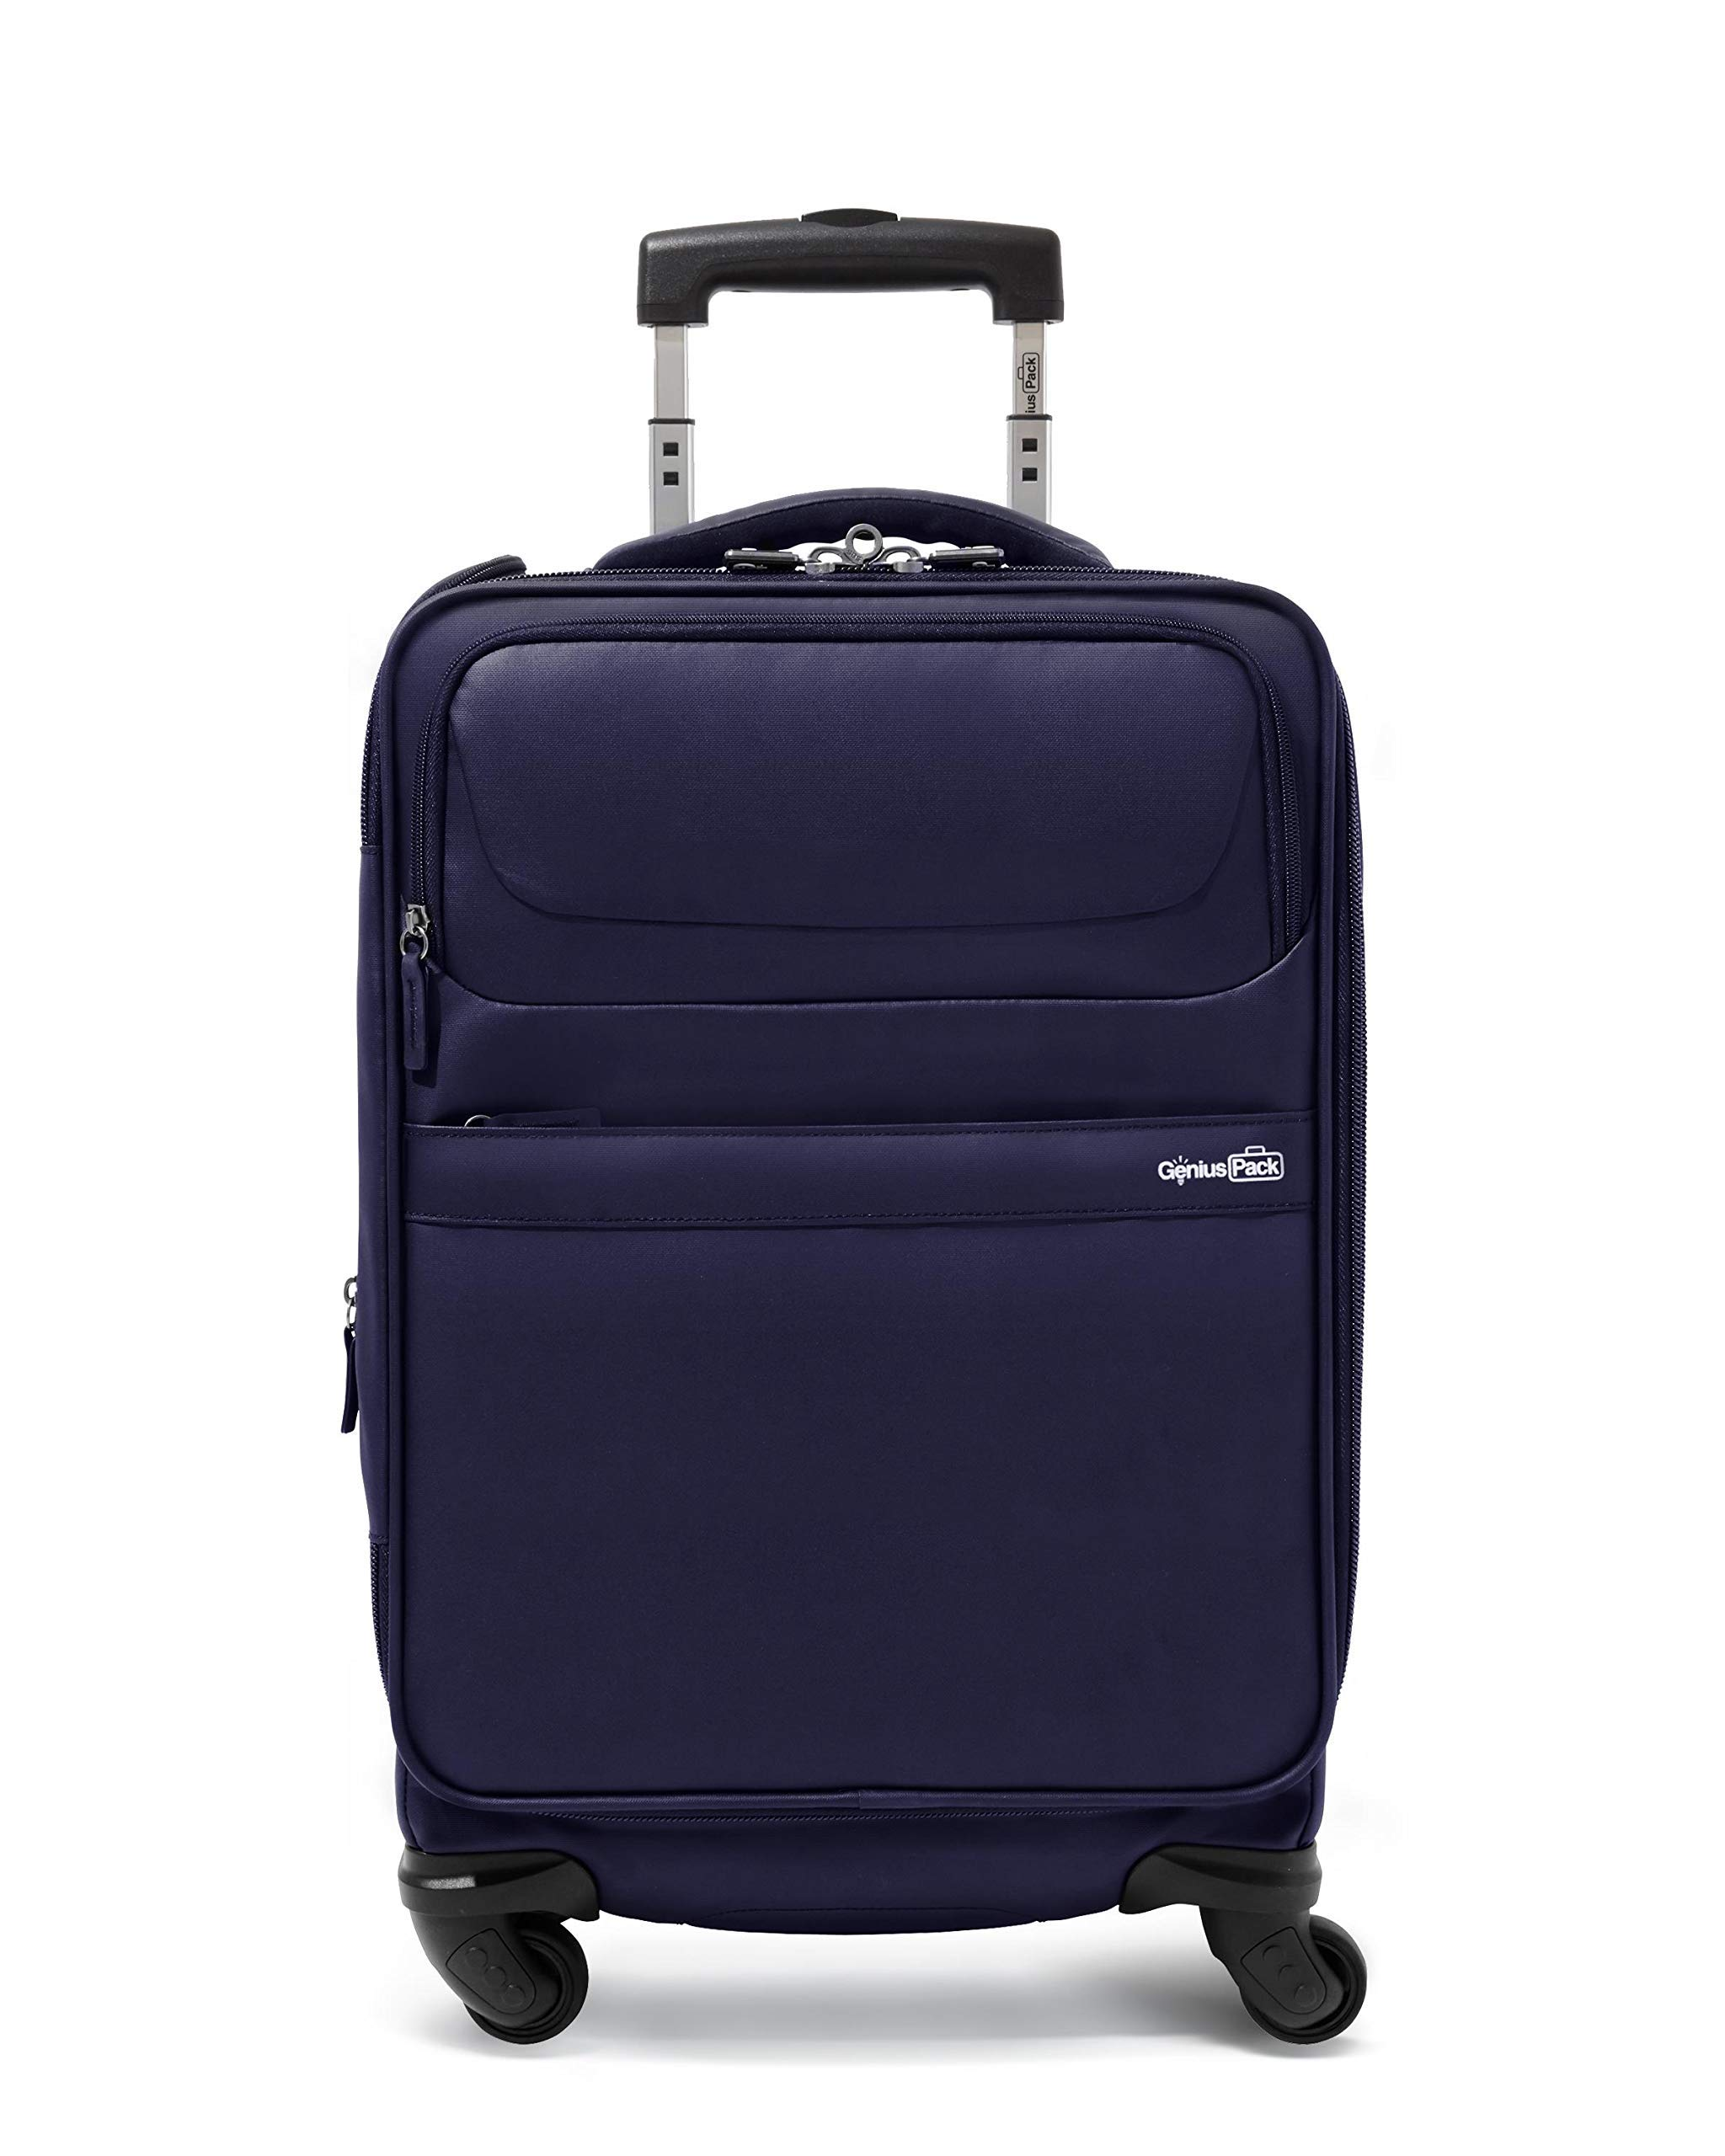 Genius Pack G4 22'' Carry On Spinner Luggage - Smart, Organized, Lightweight Suitcase (G4 - Navy)